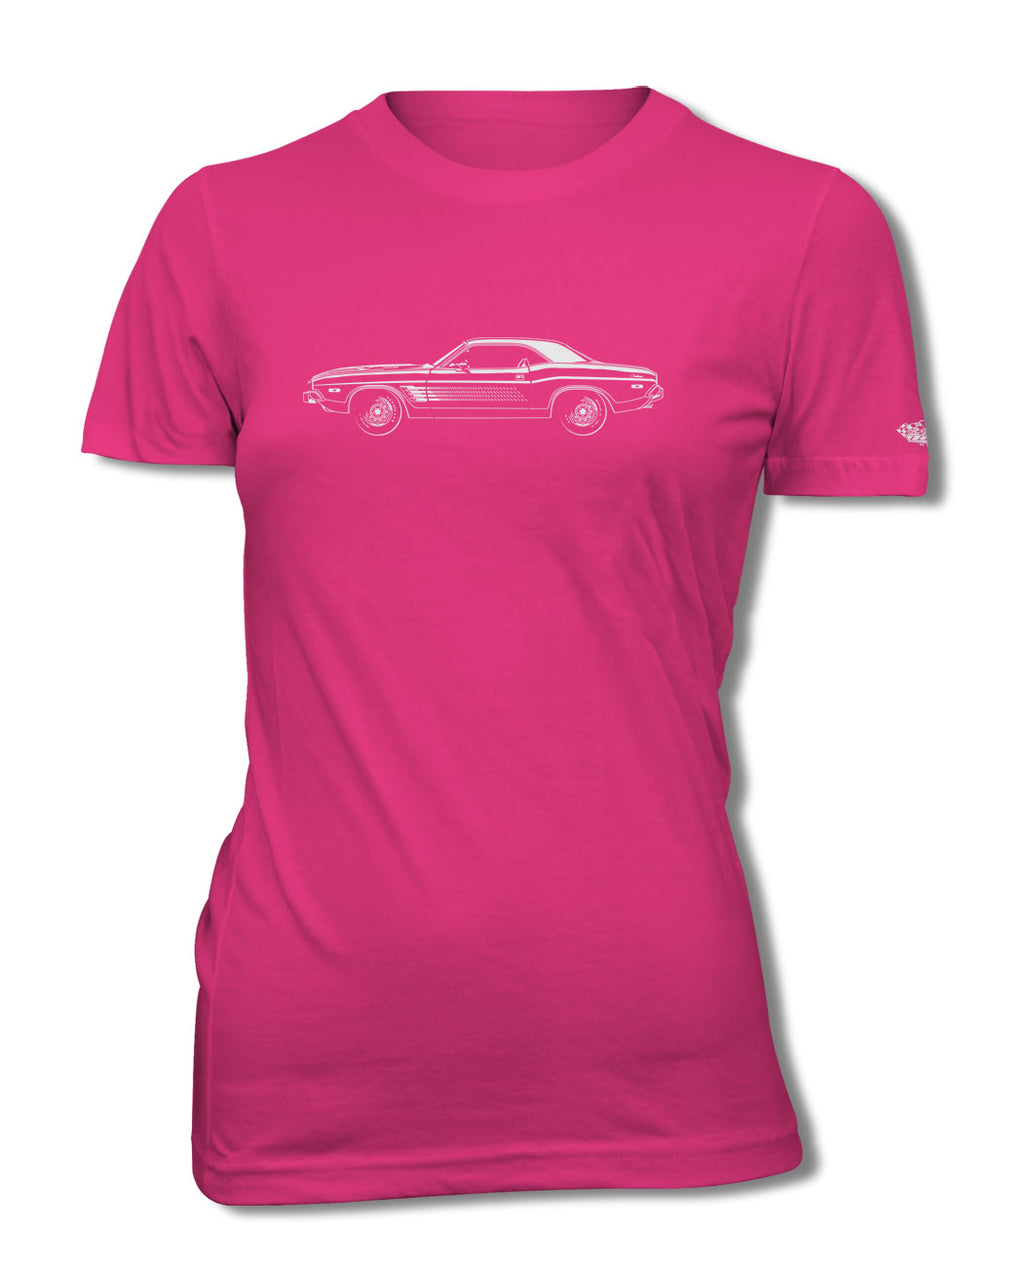 1973 Dodge Challenger Rallye with Stripes Coupe T-Shirt - Women - Side View